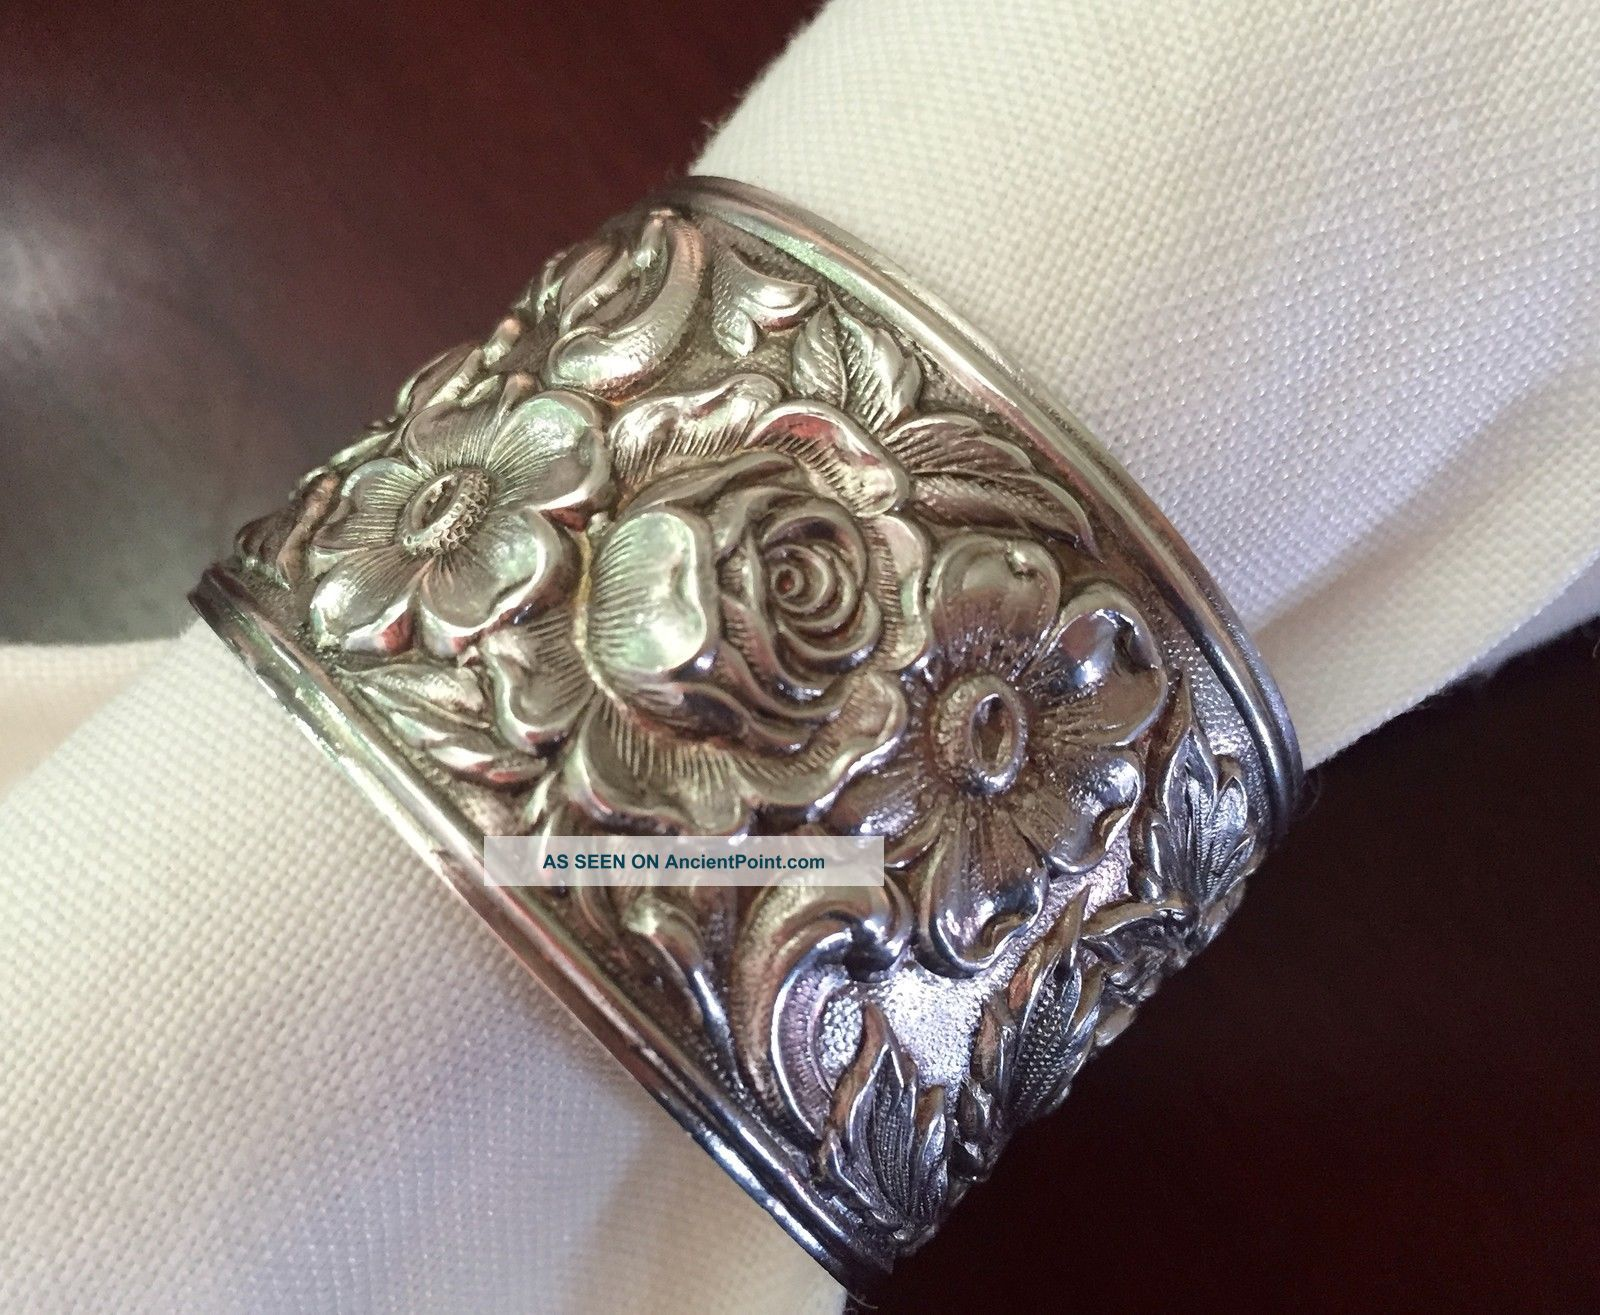 Kirk & Son Repousse Stieff Sterling Silver Napkin Ring Nouveau Victorian 2 Napkin Rings & Clips photo